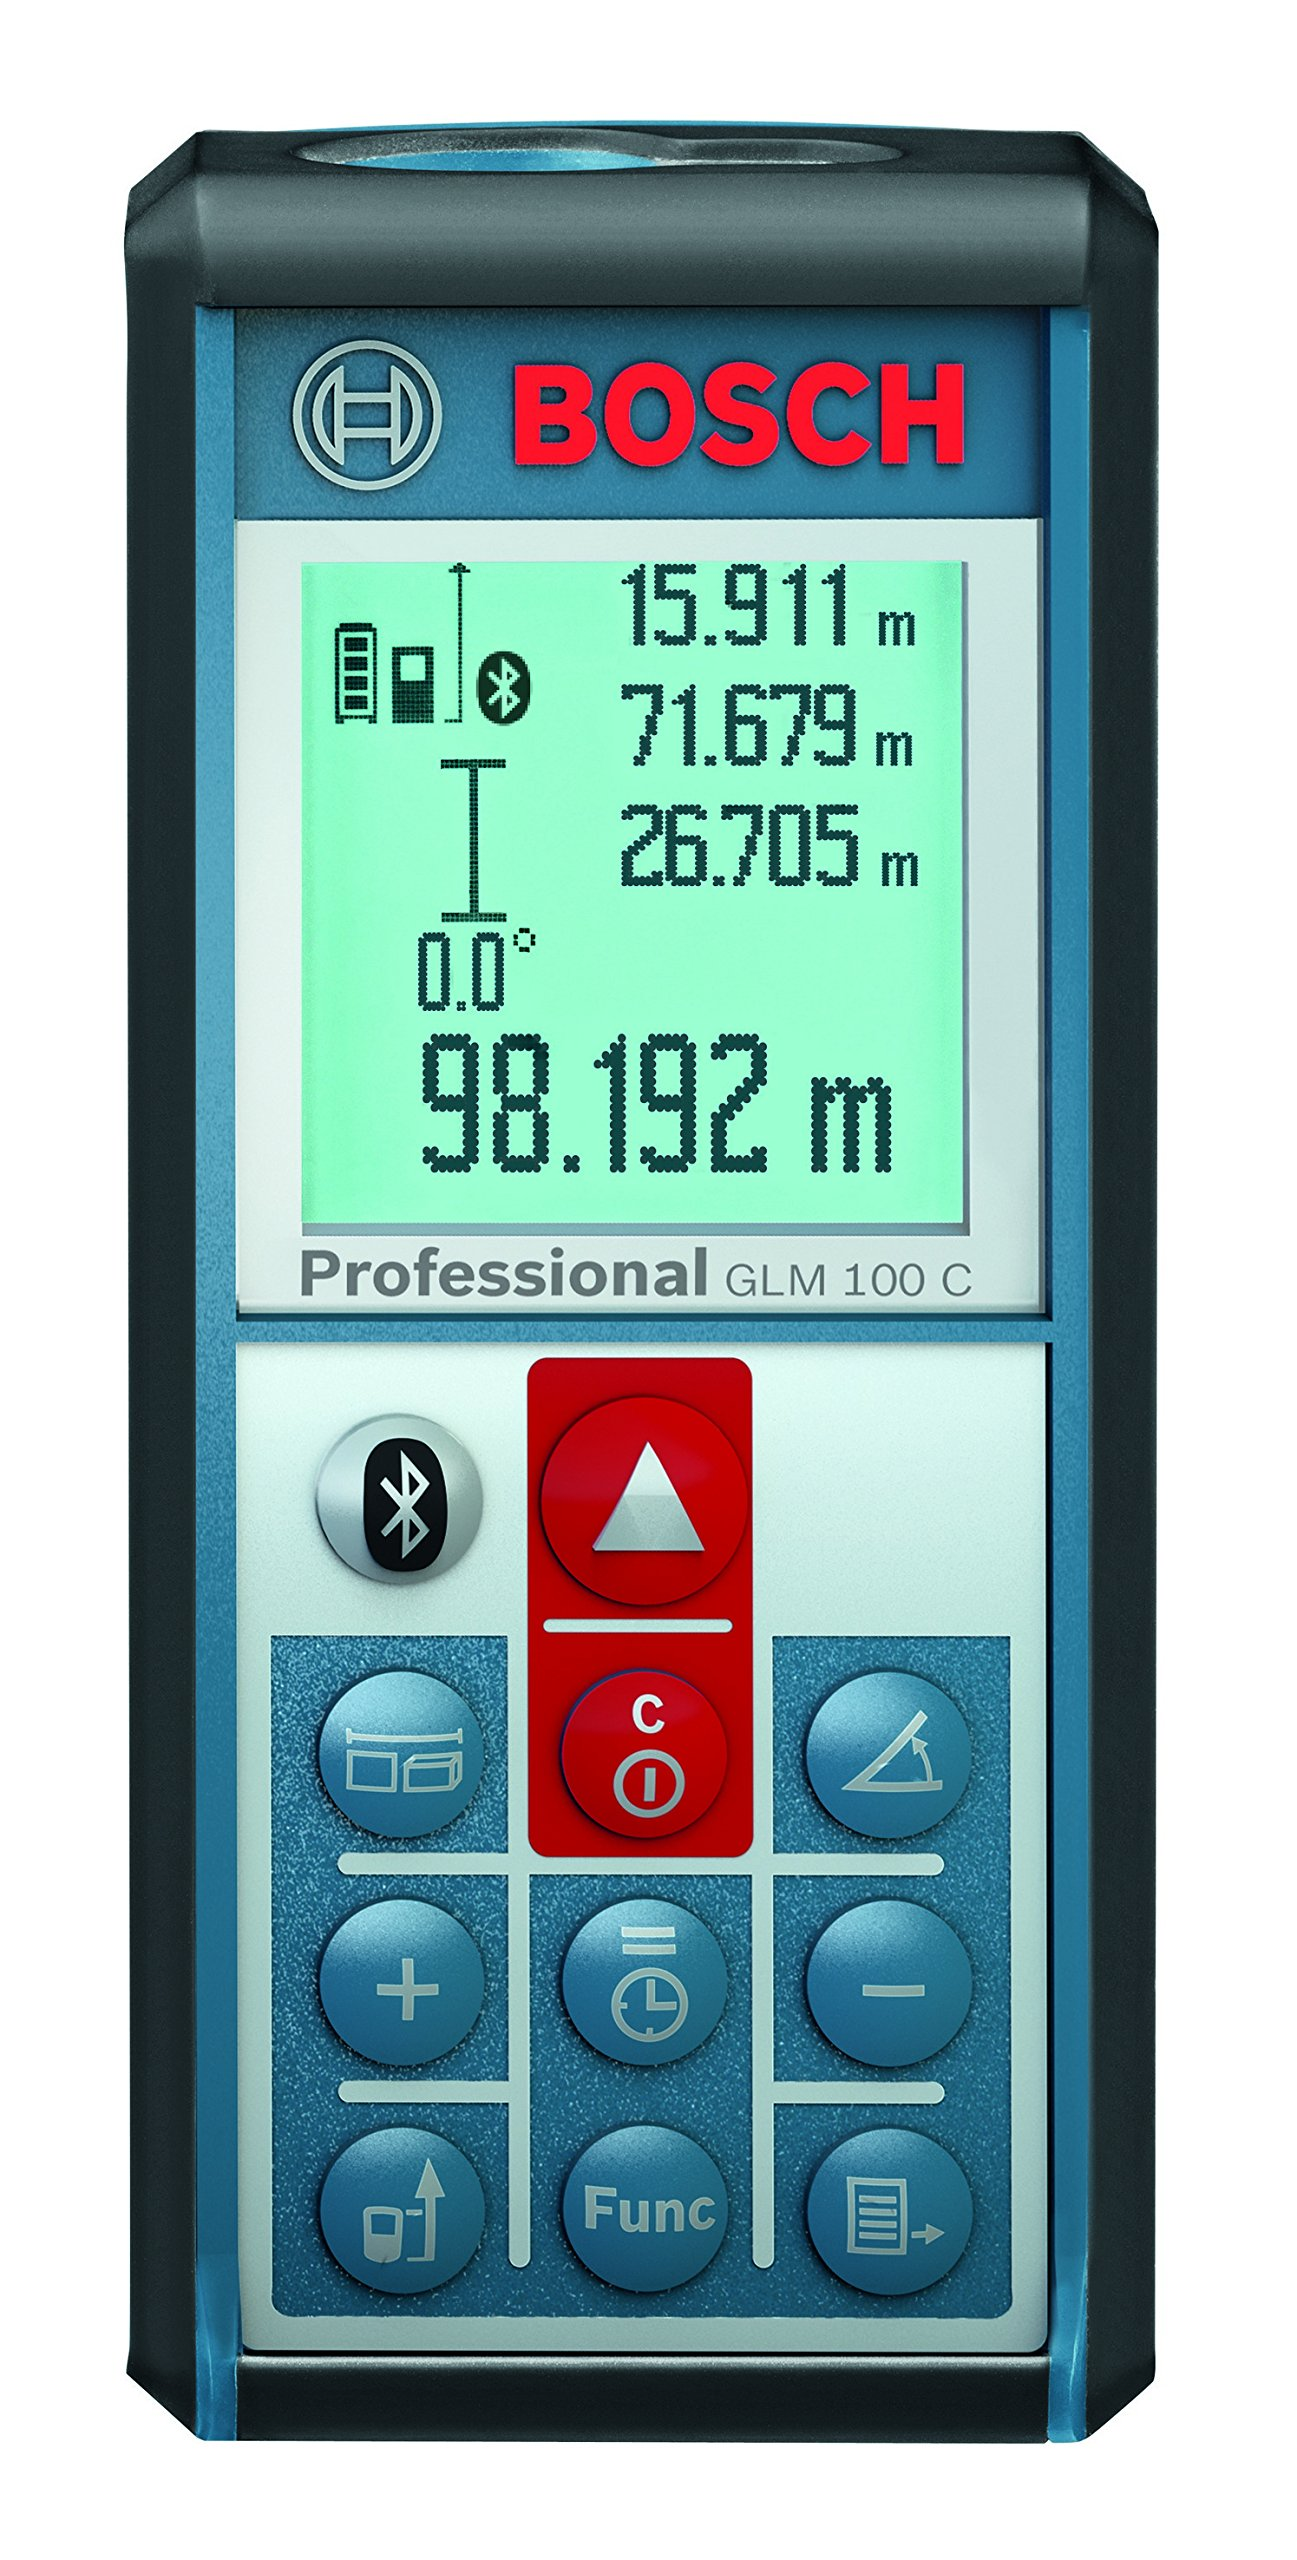 Bosch GLM 100 C Bluetooth Enabled 330-Foot Lithium-Ion Laser Distance and Angle Measurer